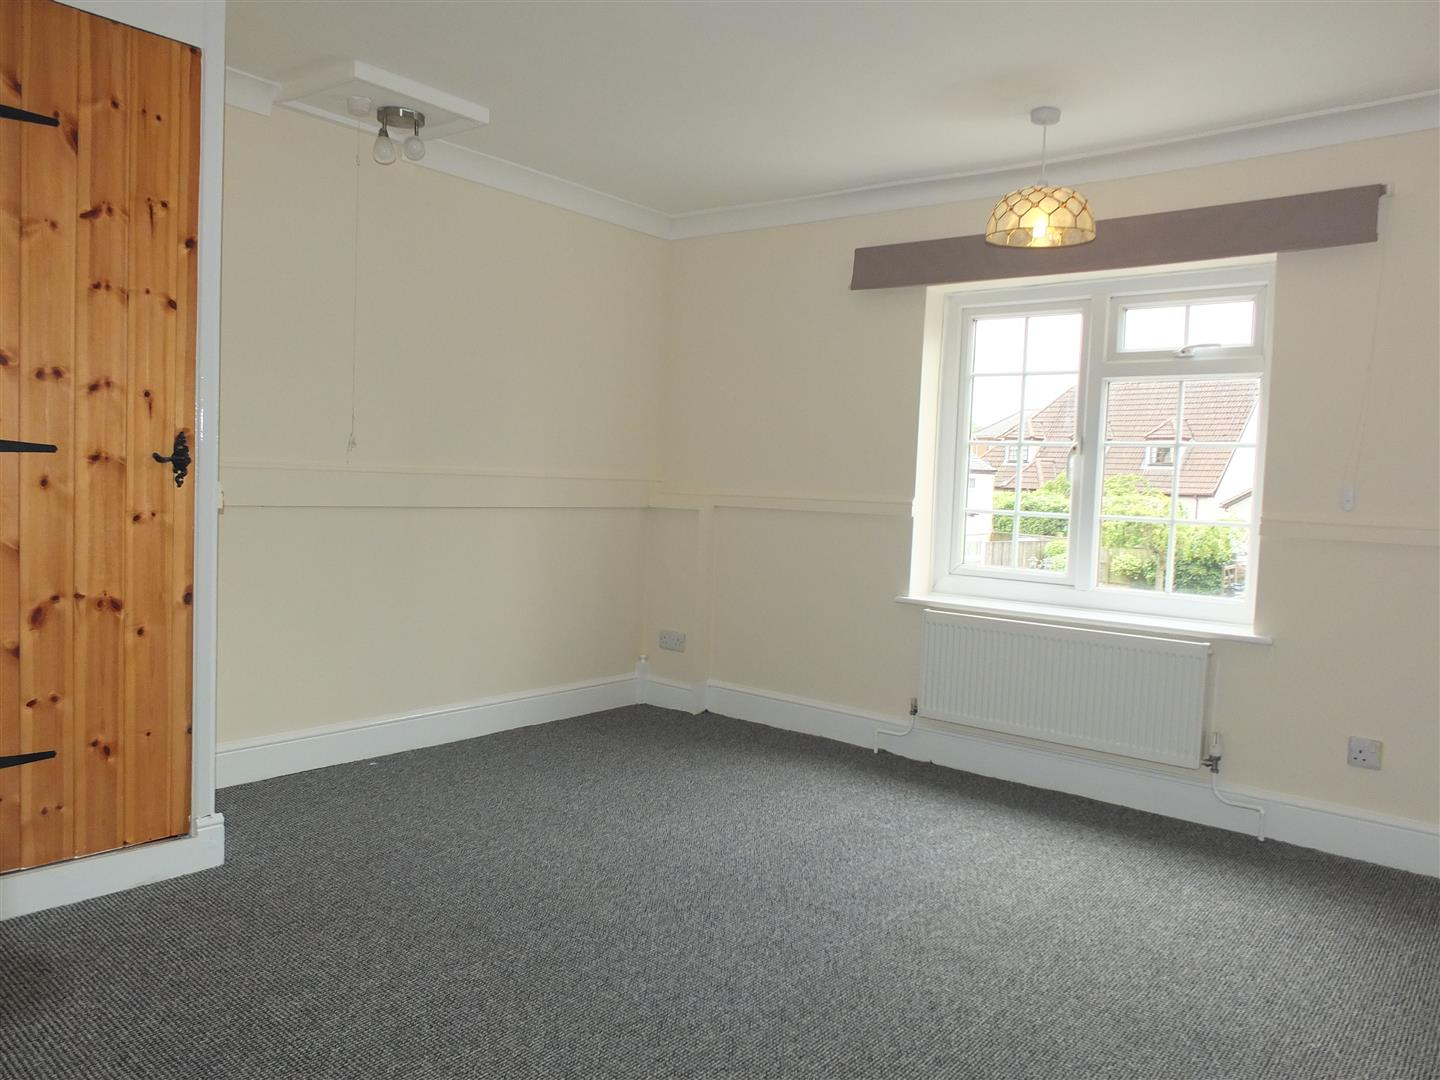 2 bed house to rent in Long Sutton Spalding, PE12 9DH  - Property Image 6